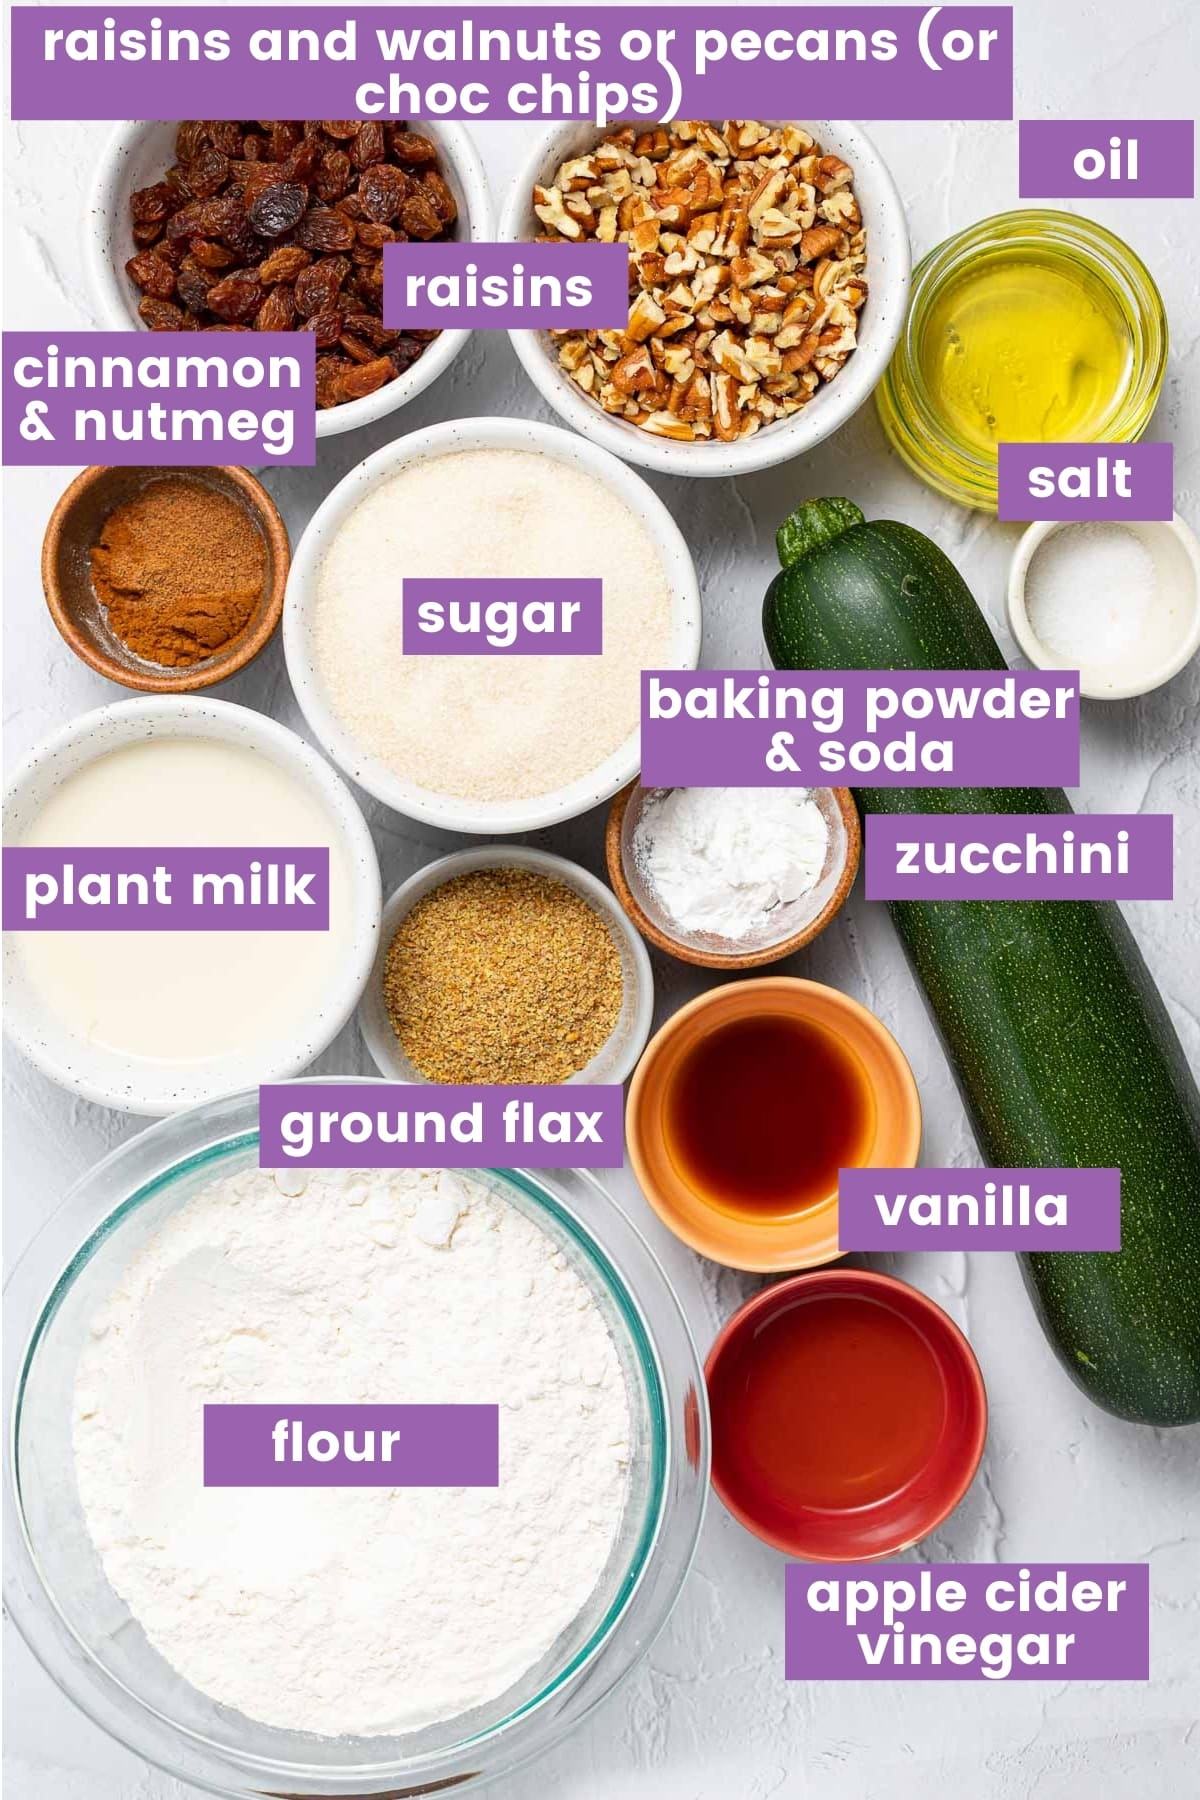 ingredients for zucchini muffins as per written list